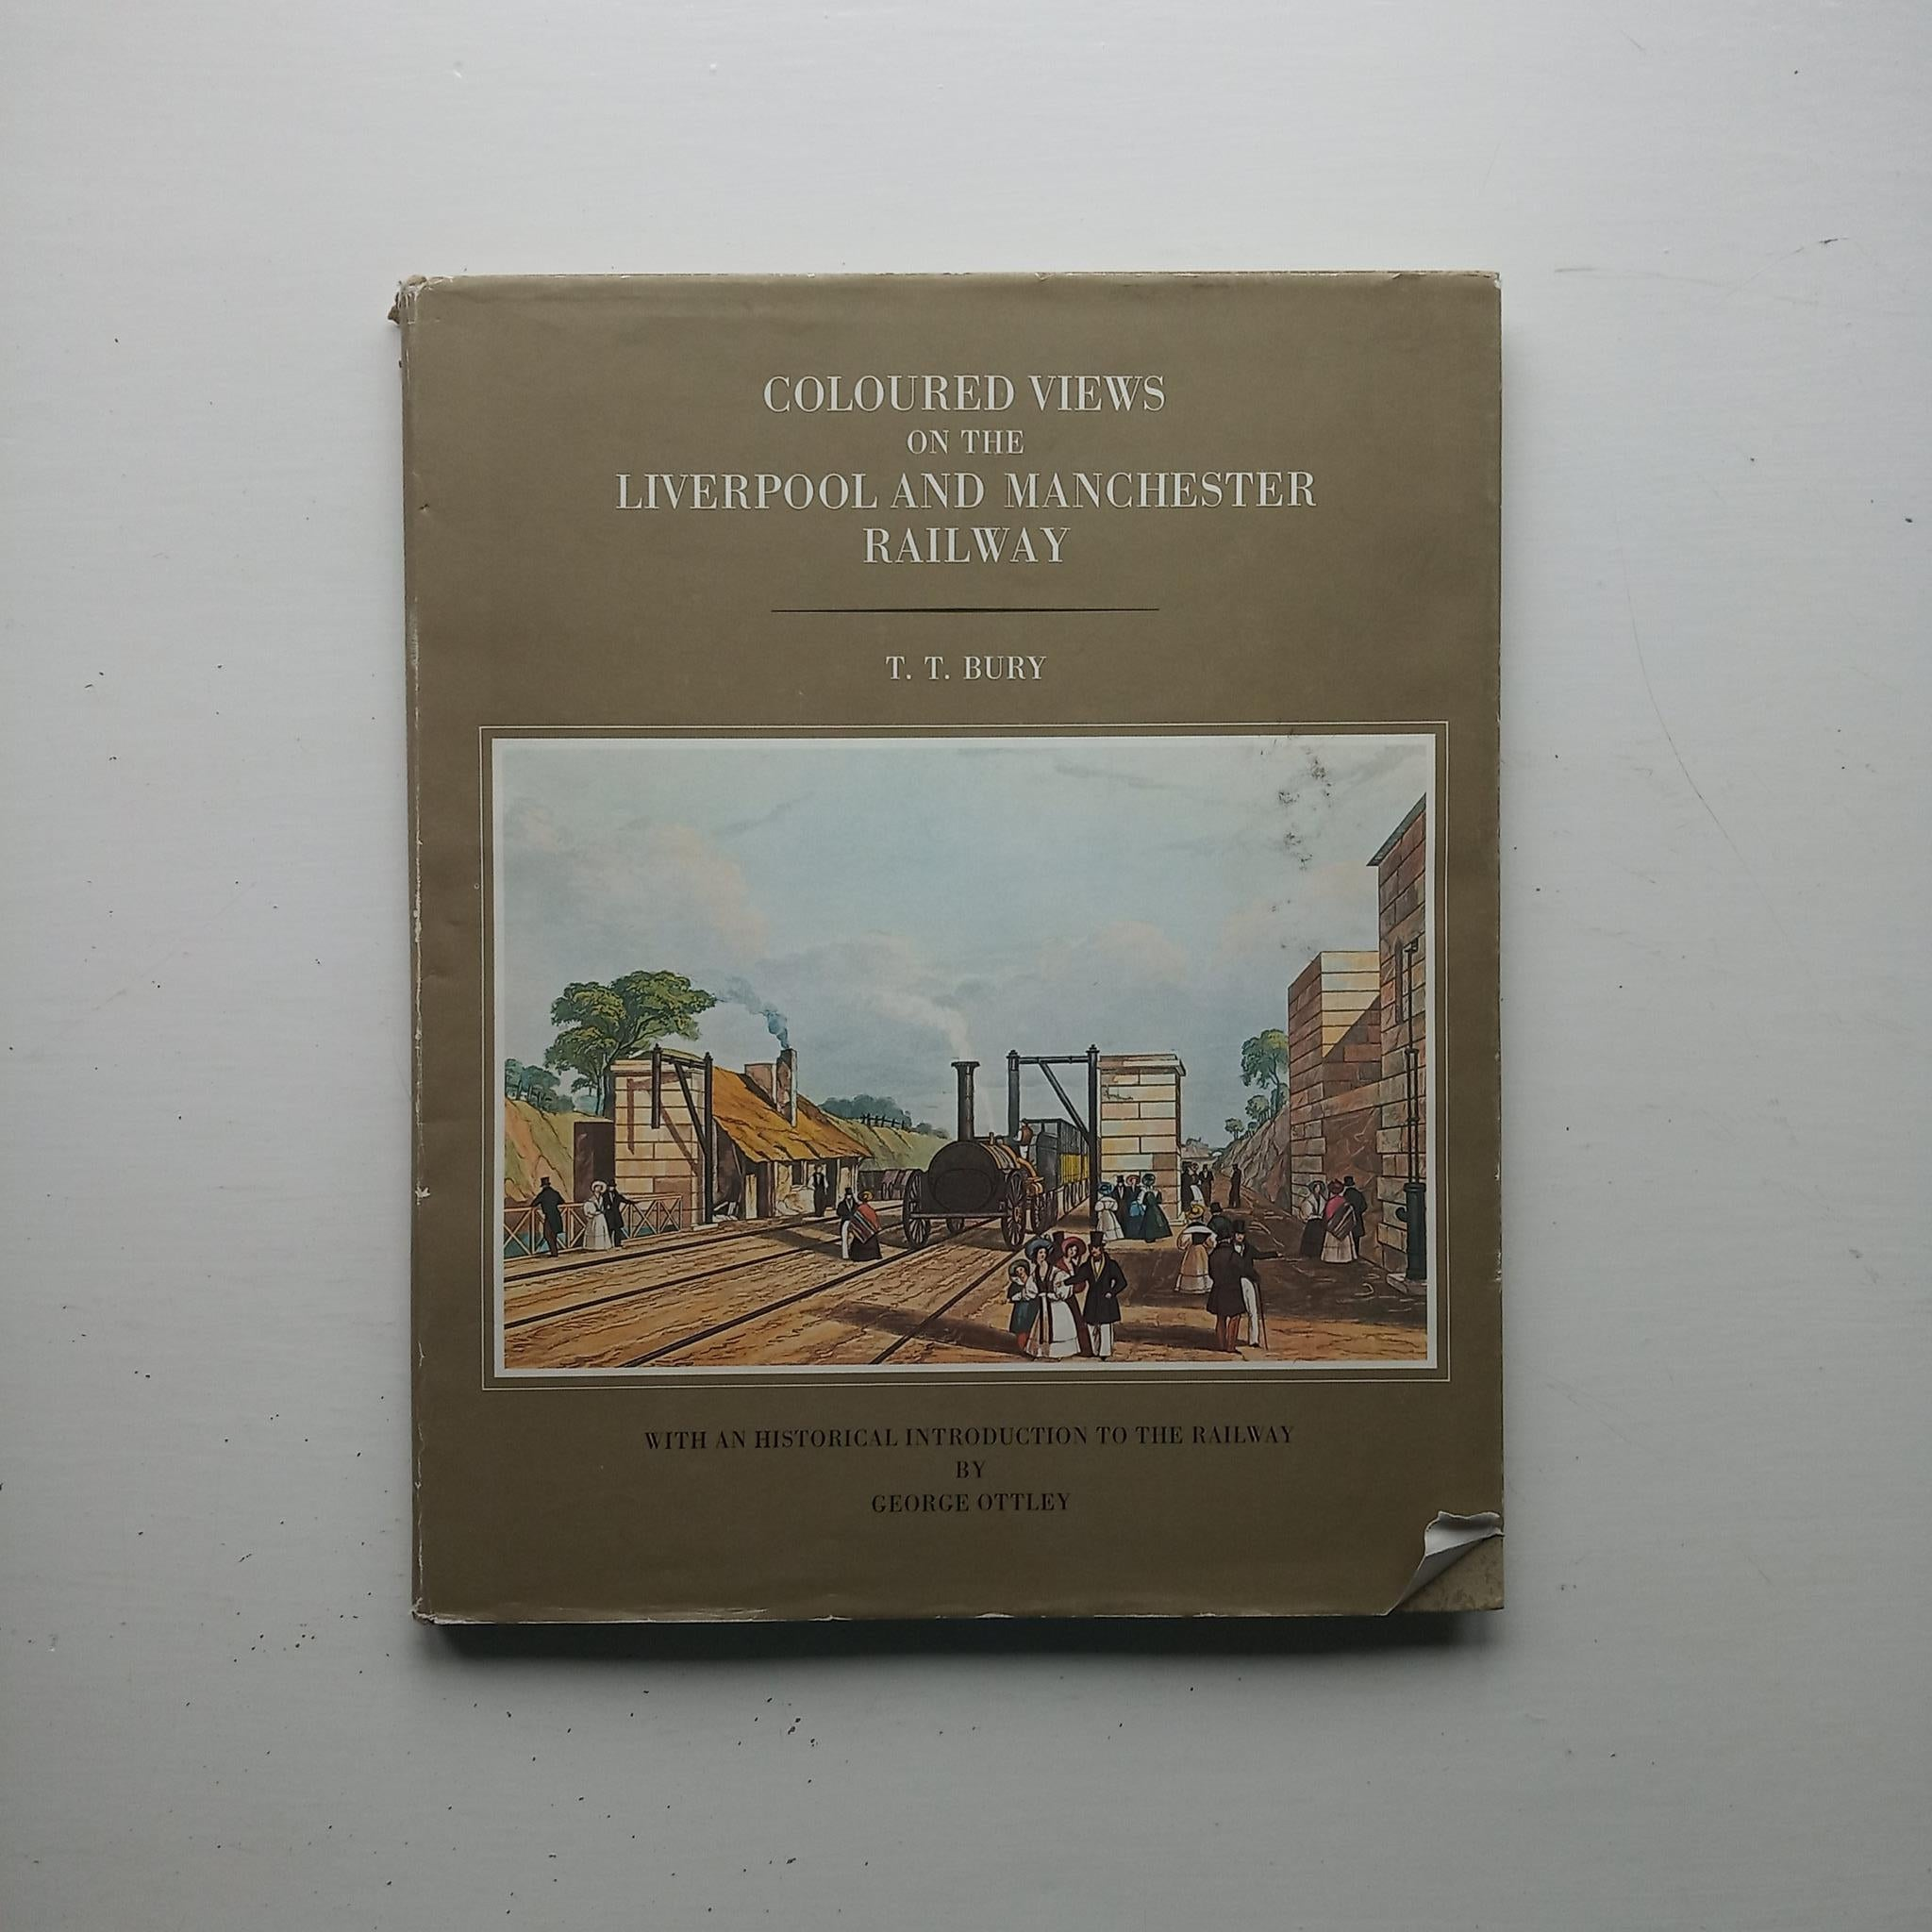 Coloured Views on the Liverpool and Manchester Railway by George Ottley